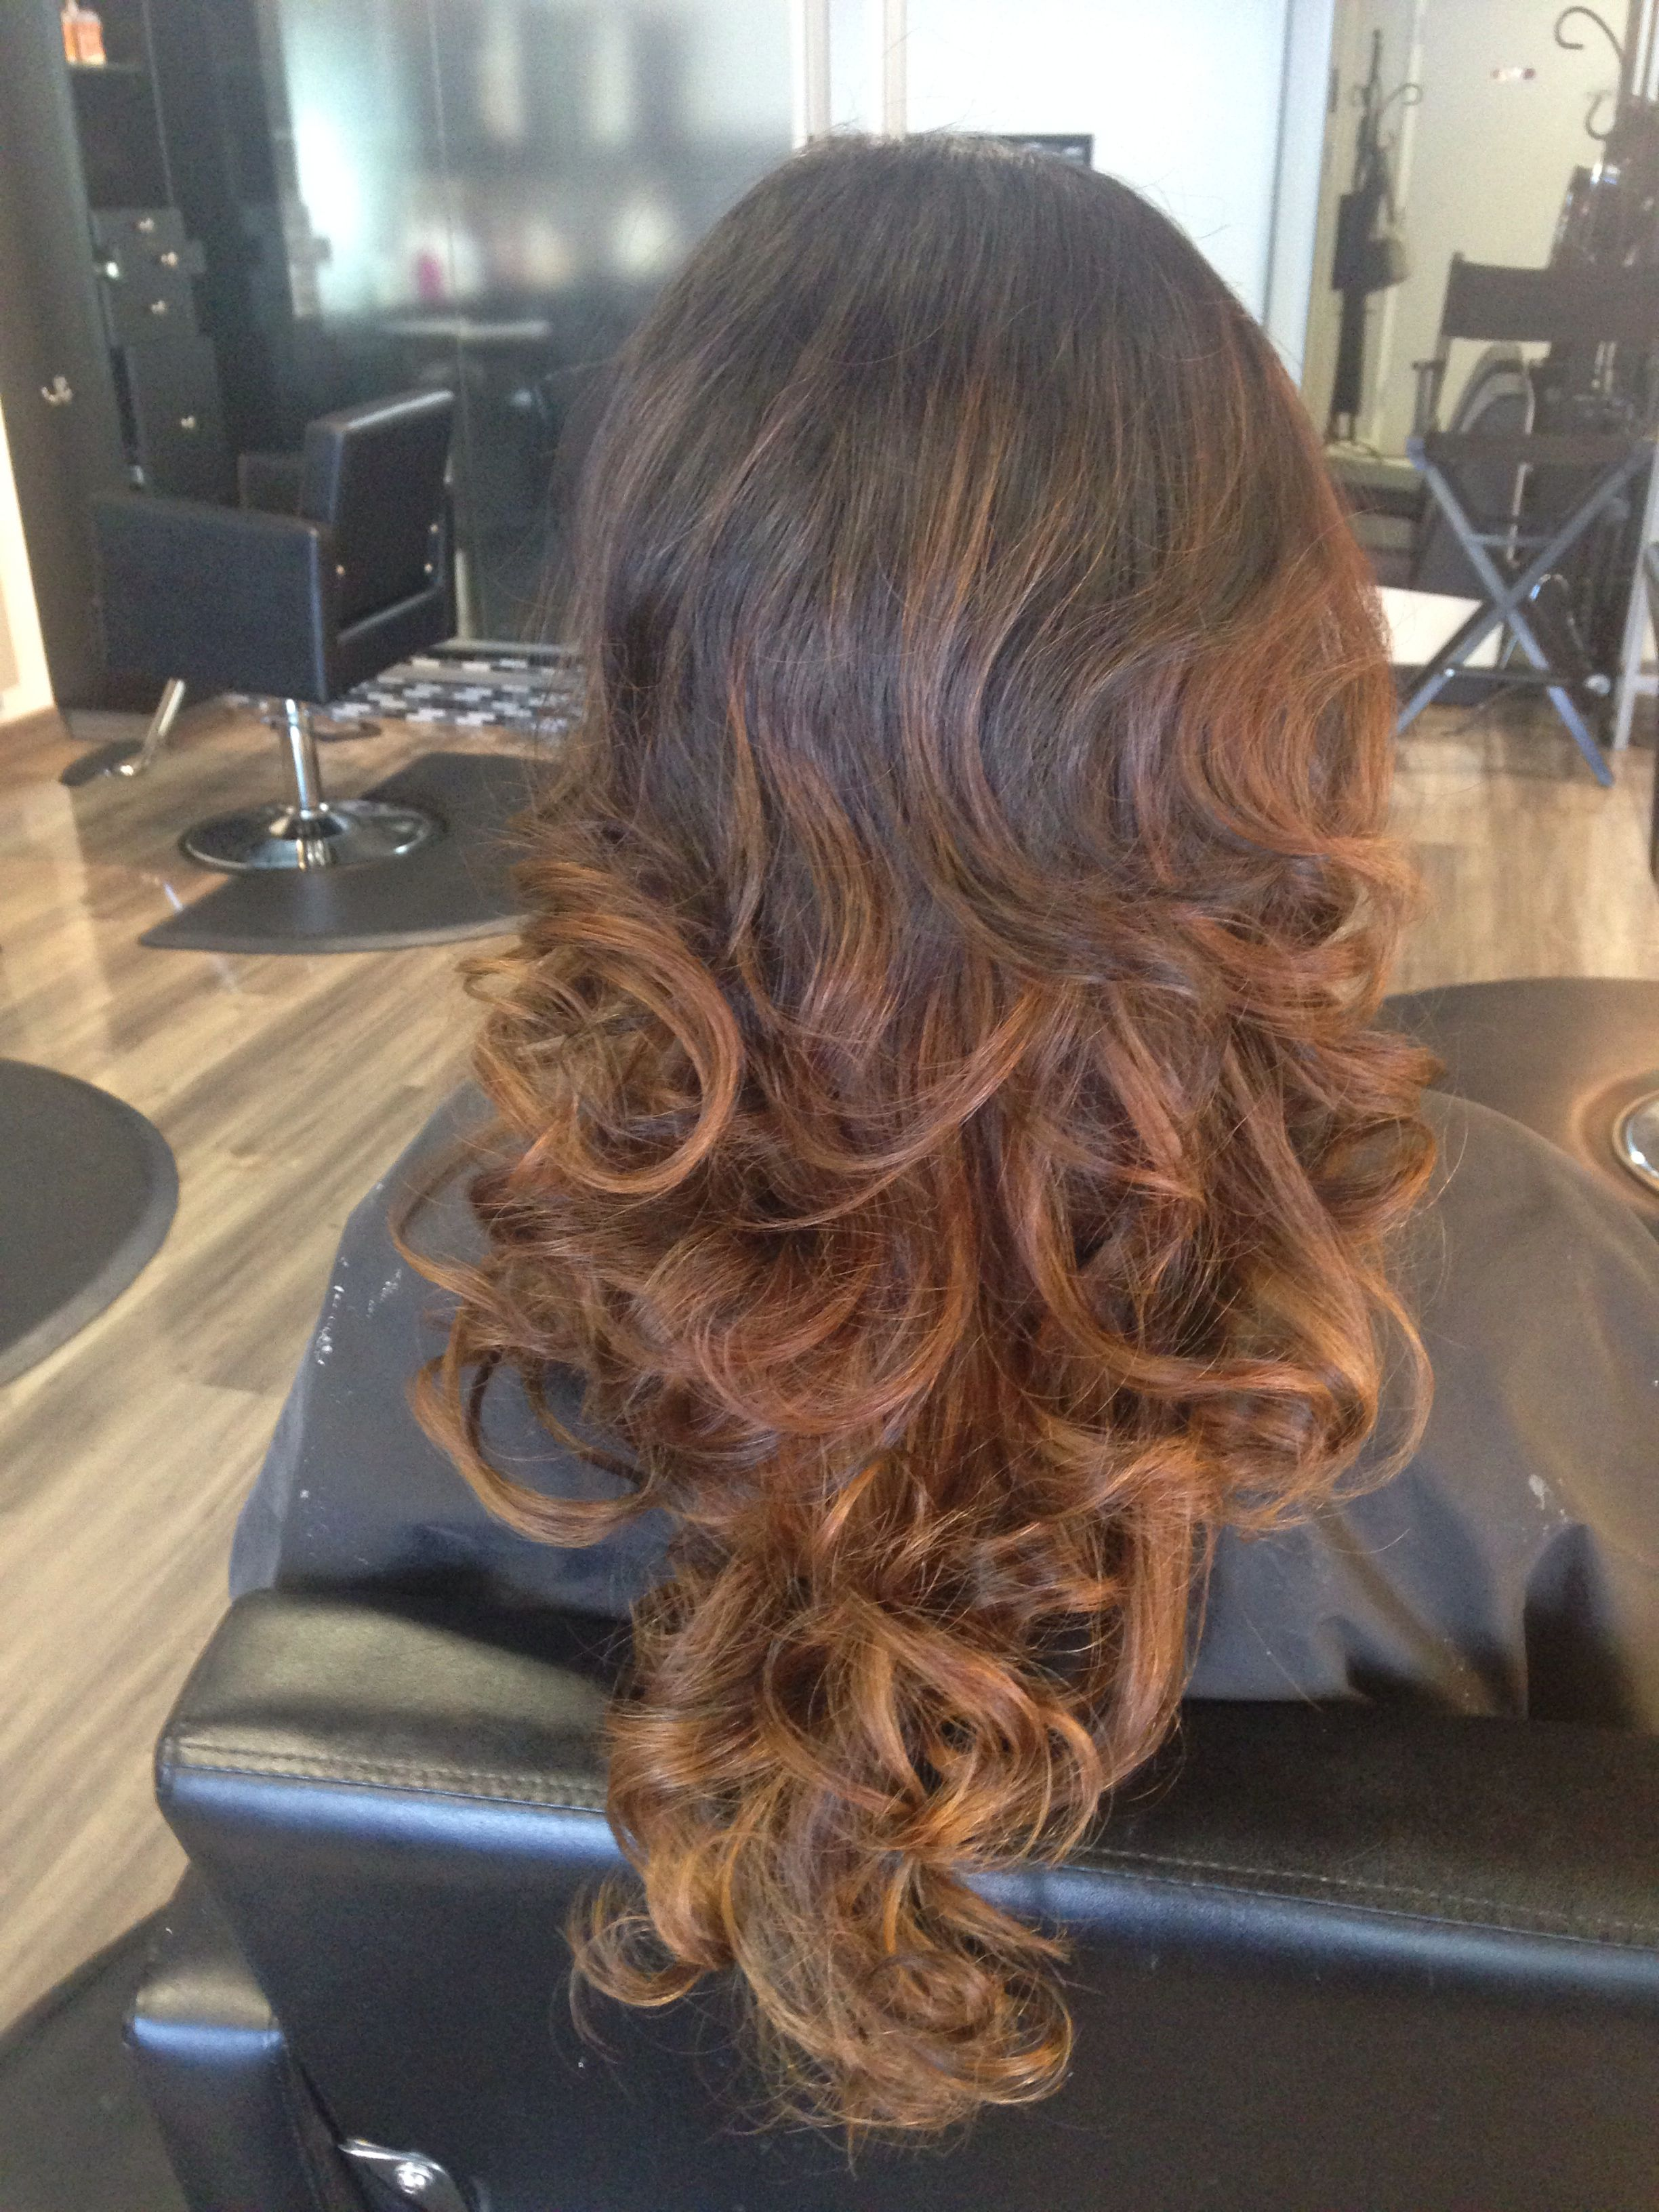 Ombré, hair by Angel Delao